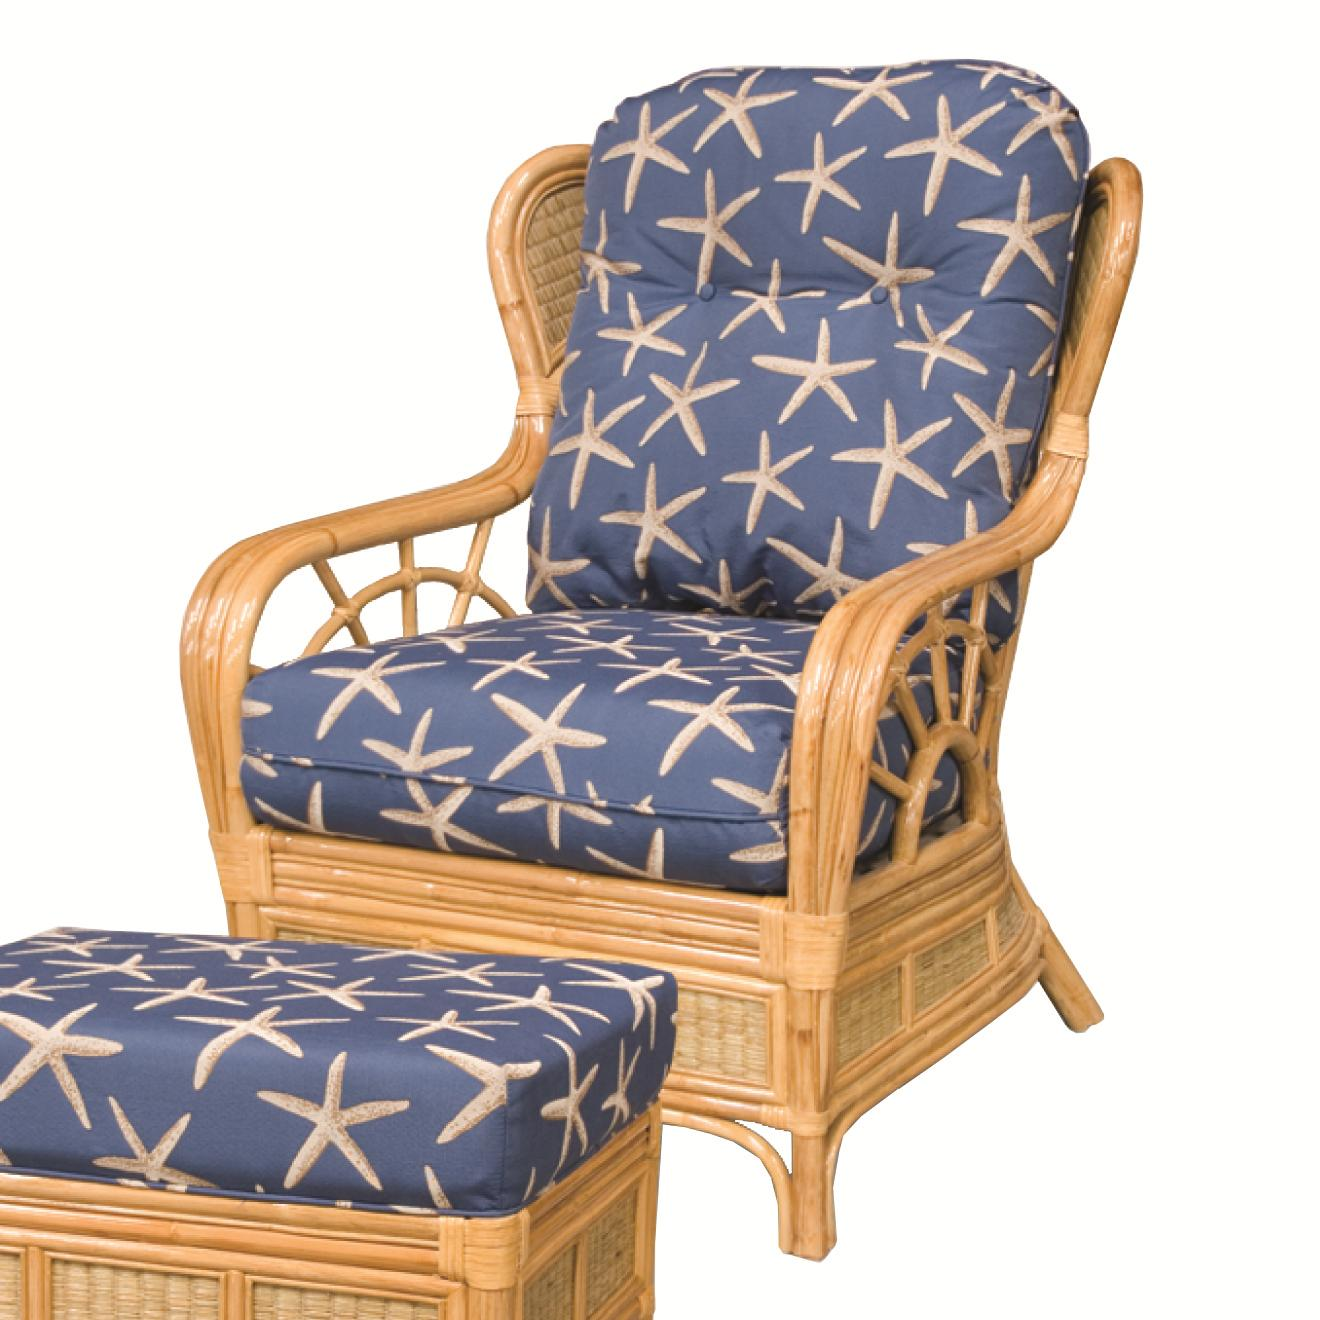 381 Collection Wicker Rattan Upholstered Chair by Capris Furniture at Esprit Decor Home Furnishings